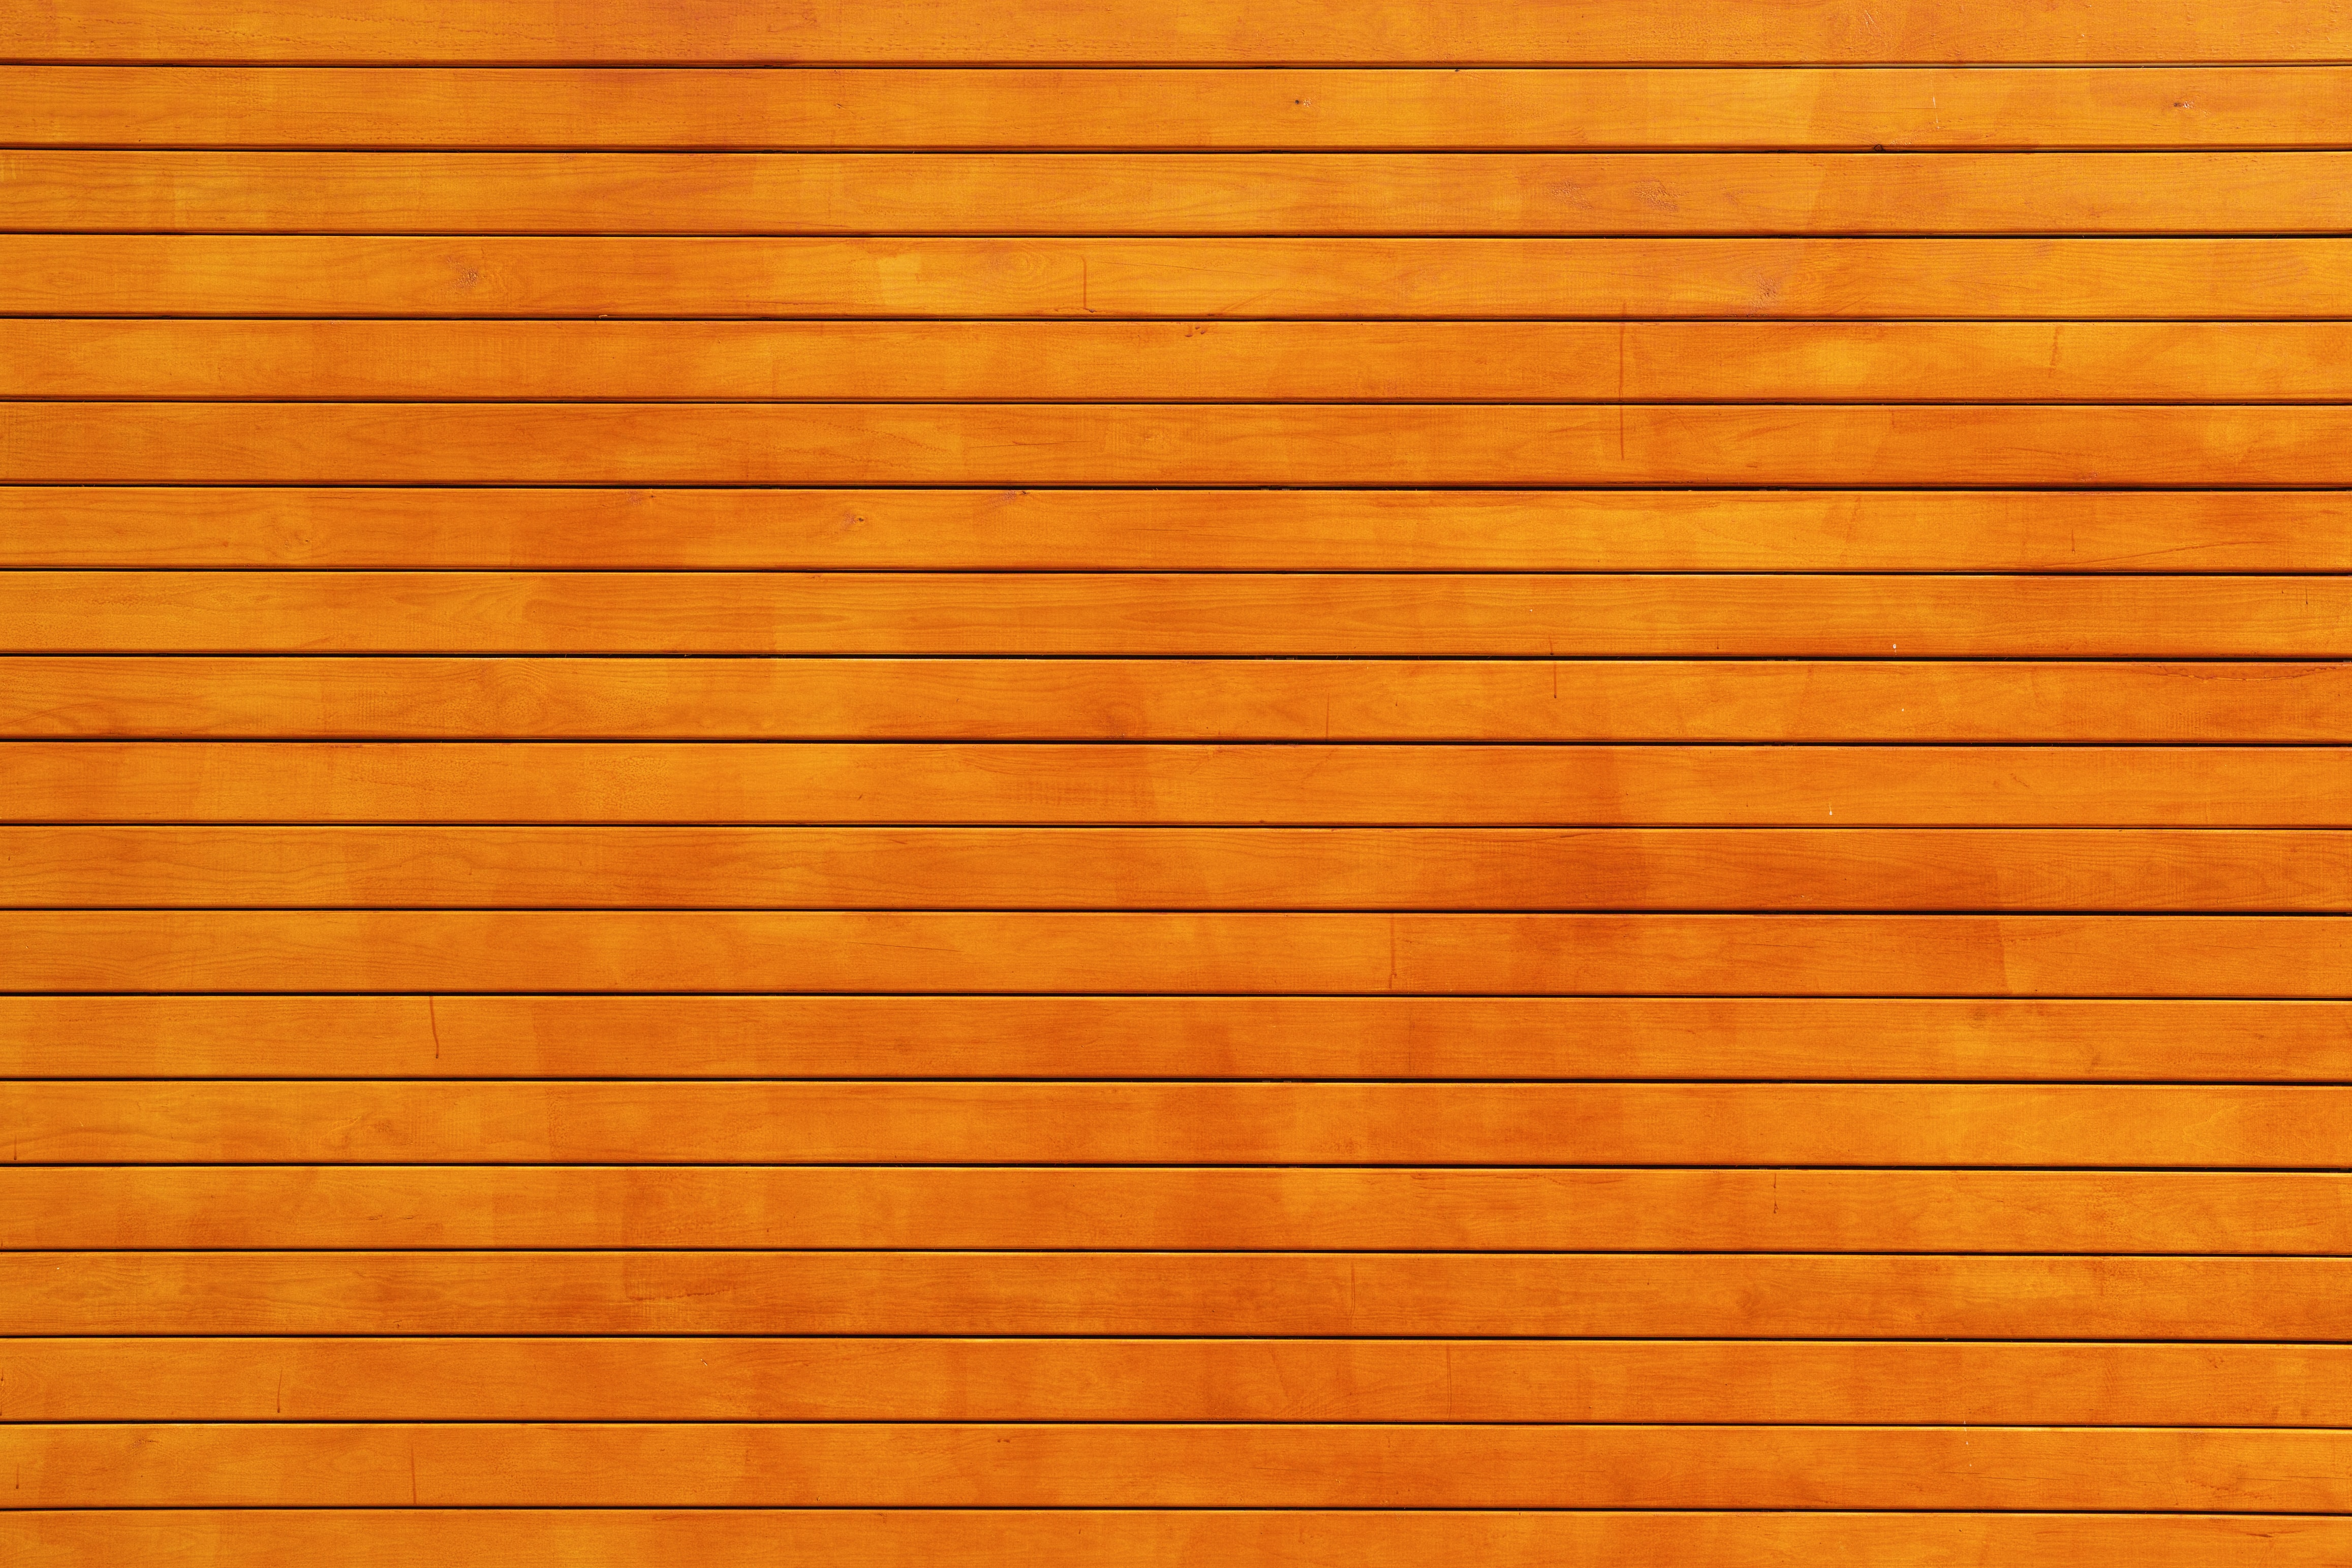 83479 download wallpaper Textures, Texture, Planks, Board, Wood, Wooden, Stripes, Streaks, Brown screensavers and pictures for free